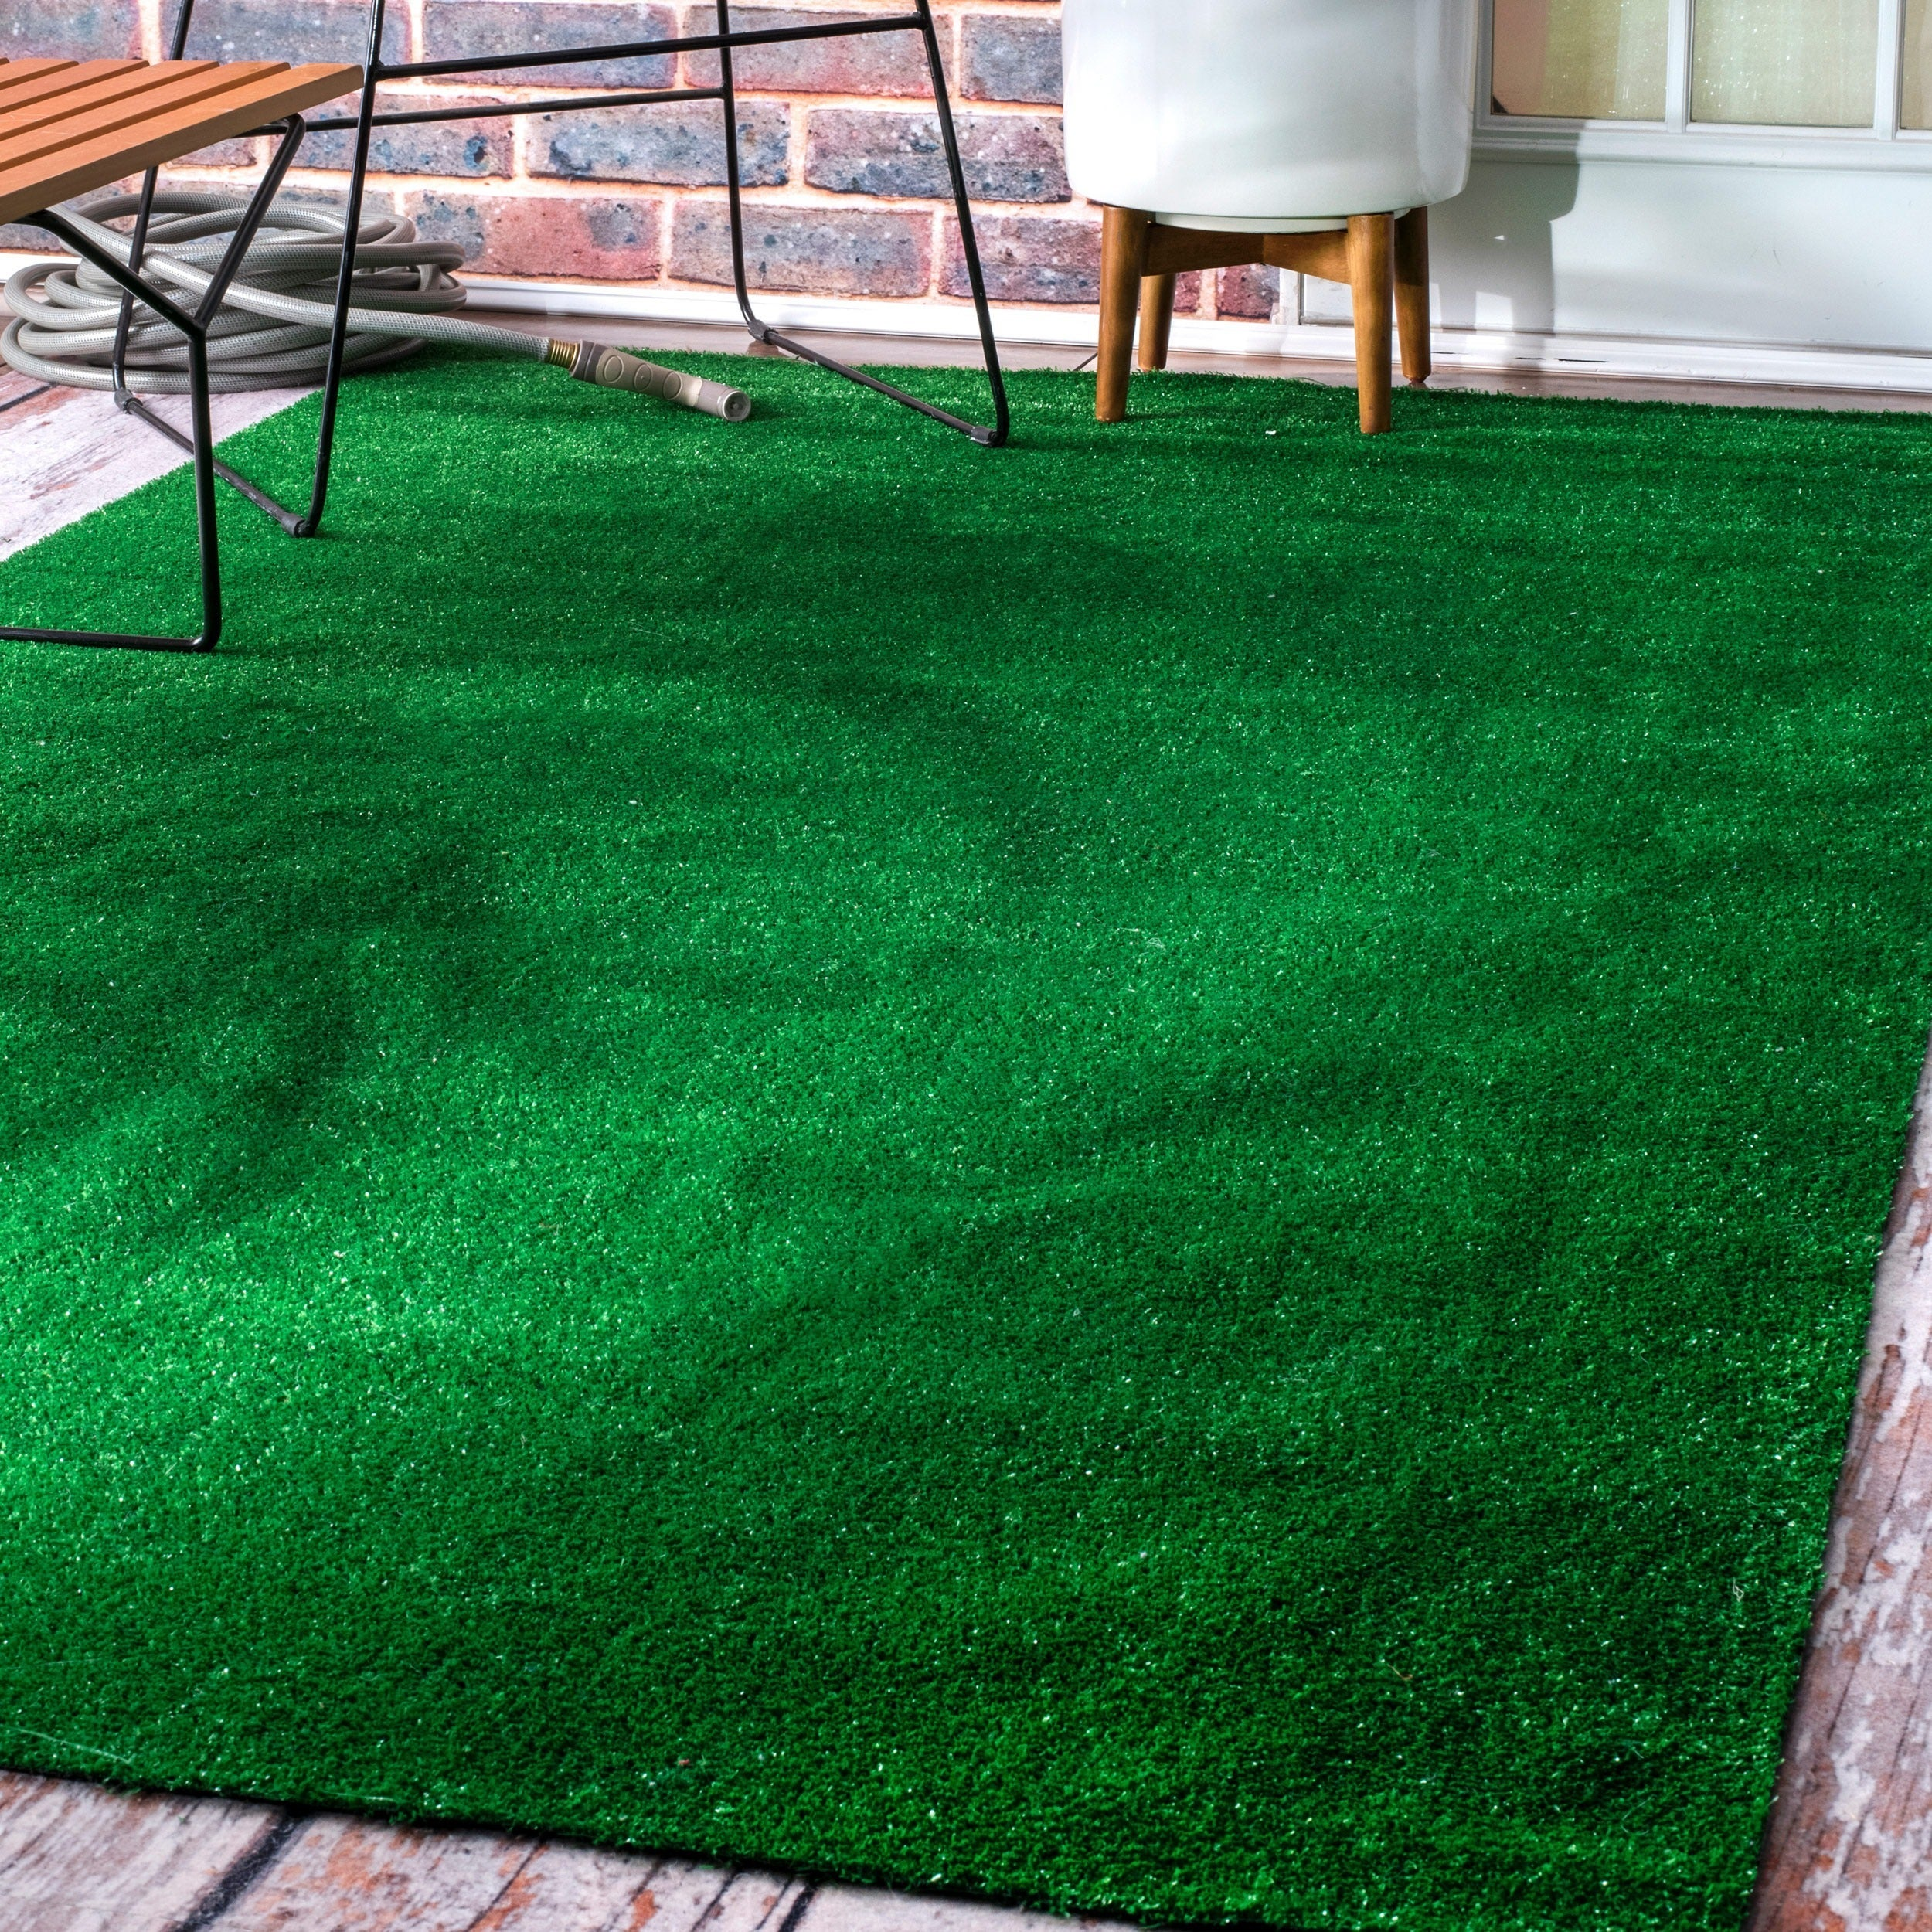 Nuloom Green Artificial Grass Outdoor Lawn Turf Patio Area